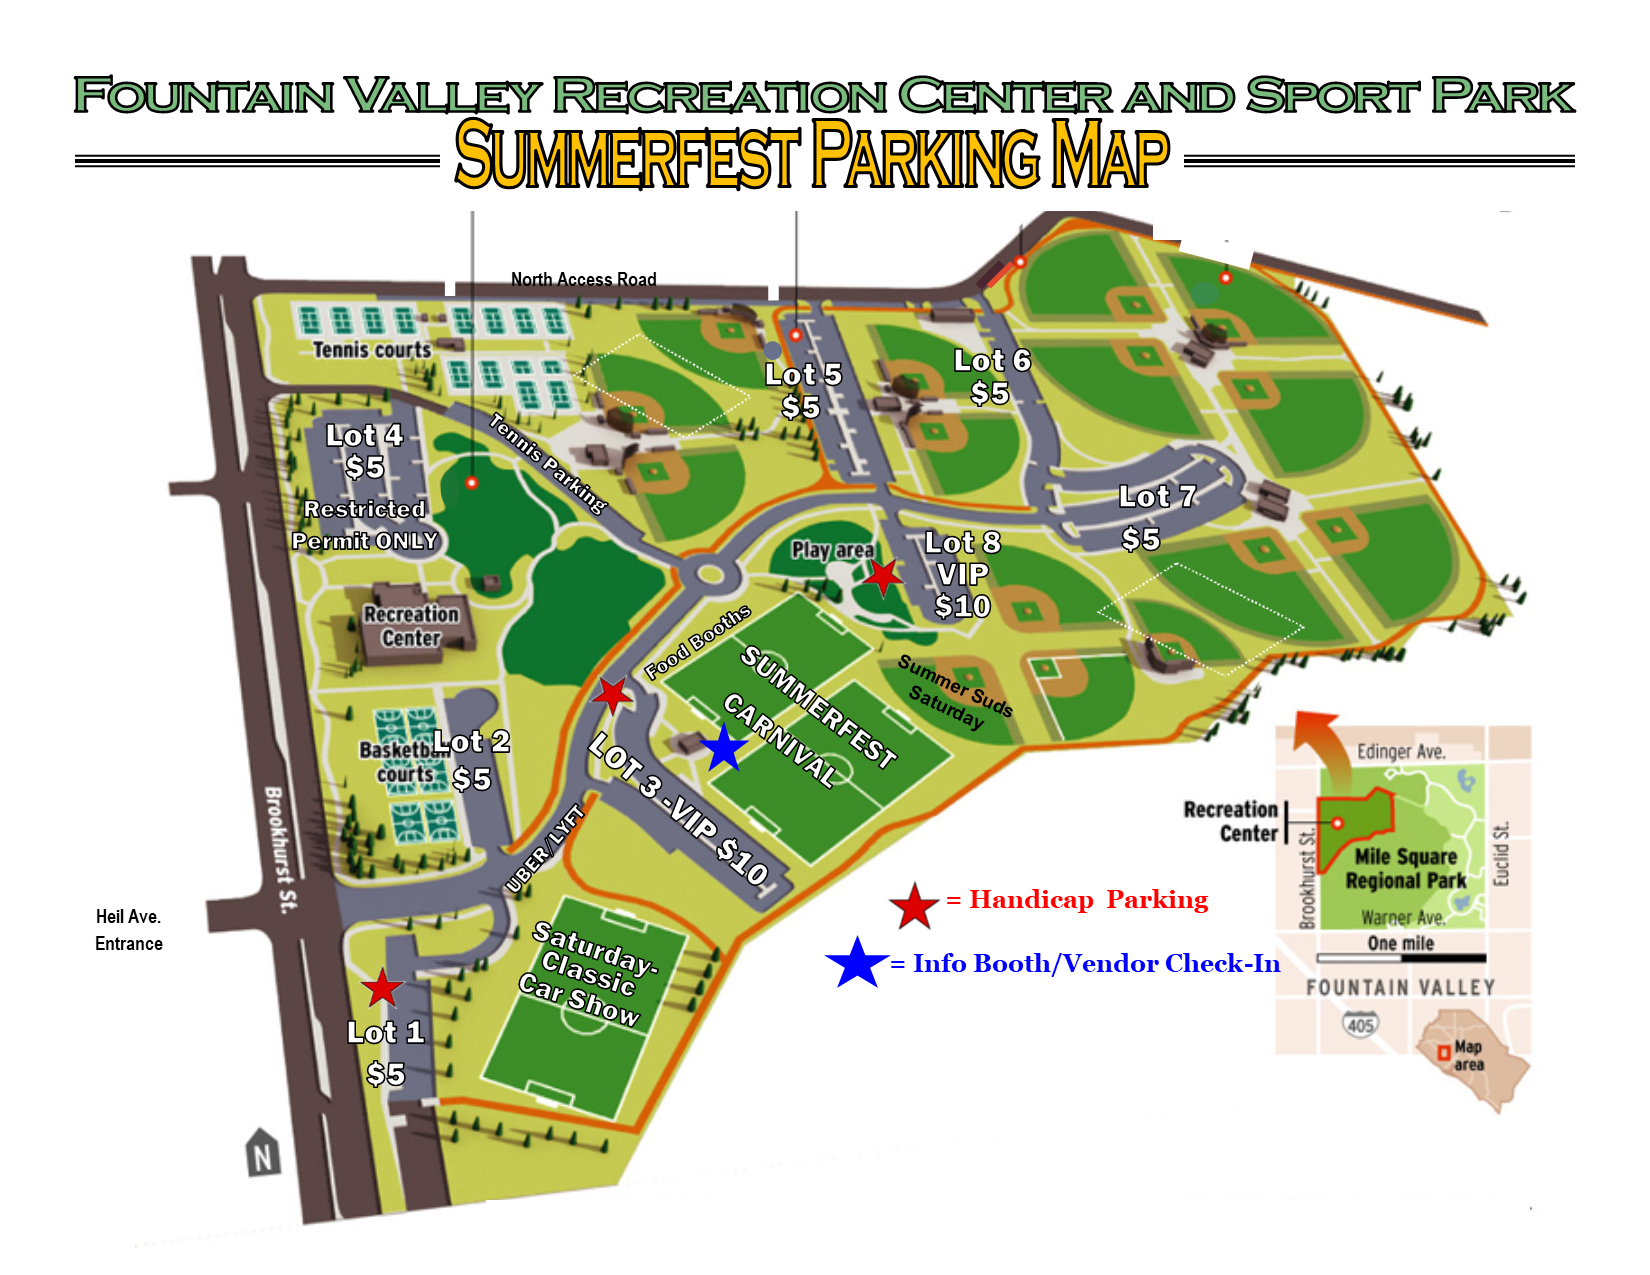 Summerfest Event Map | Fountain Valley, CA - Official Website on